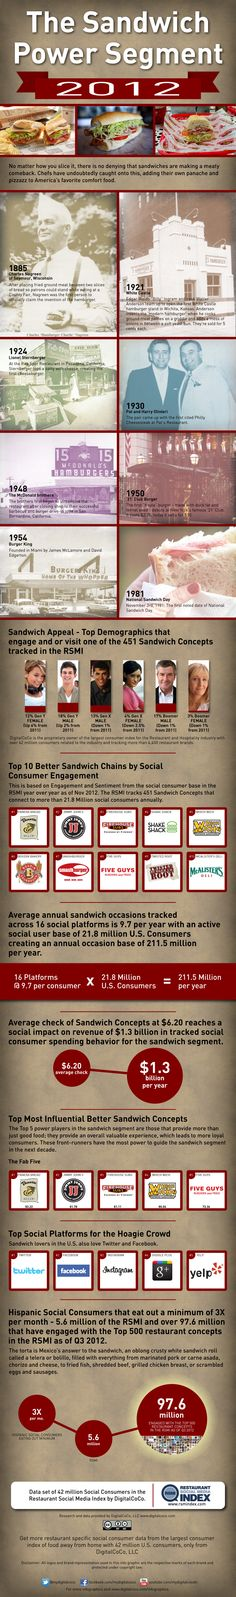 The Sandwich Power Segment 2012 Infographic - The players that make up the sandwich segment in 2012 and the love affair that the American social consumer has with these concepts. Industry Research, Great Restaurants, Social Marketing, Infographics, Affair, Sandwiches, Social Media, American, Digital